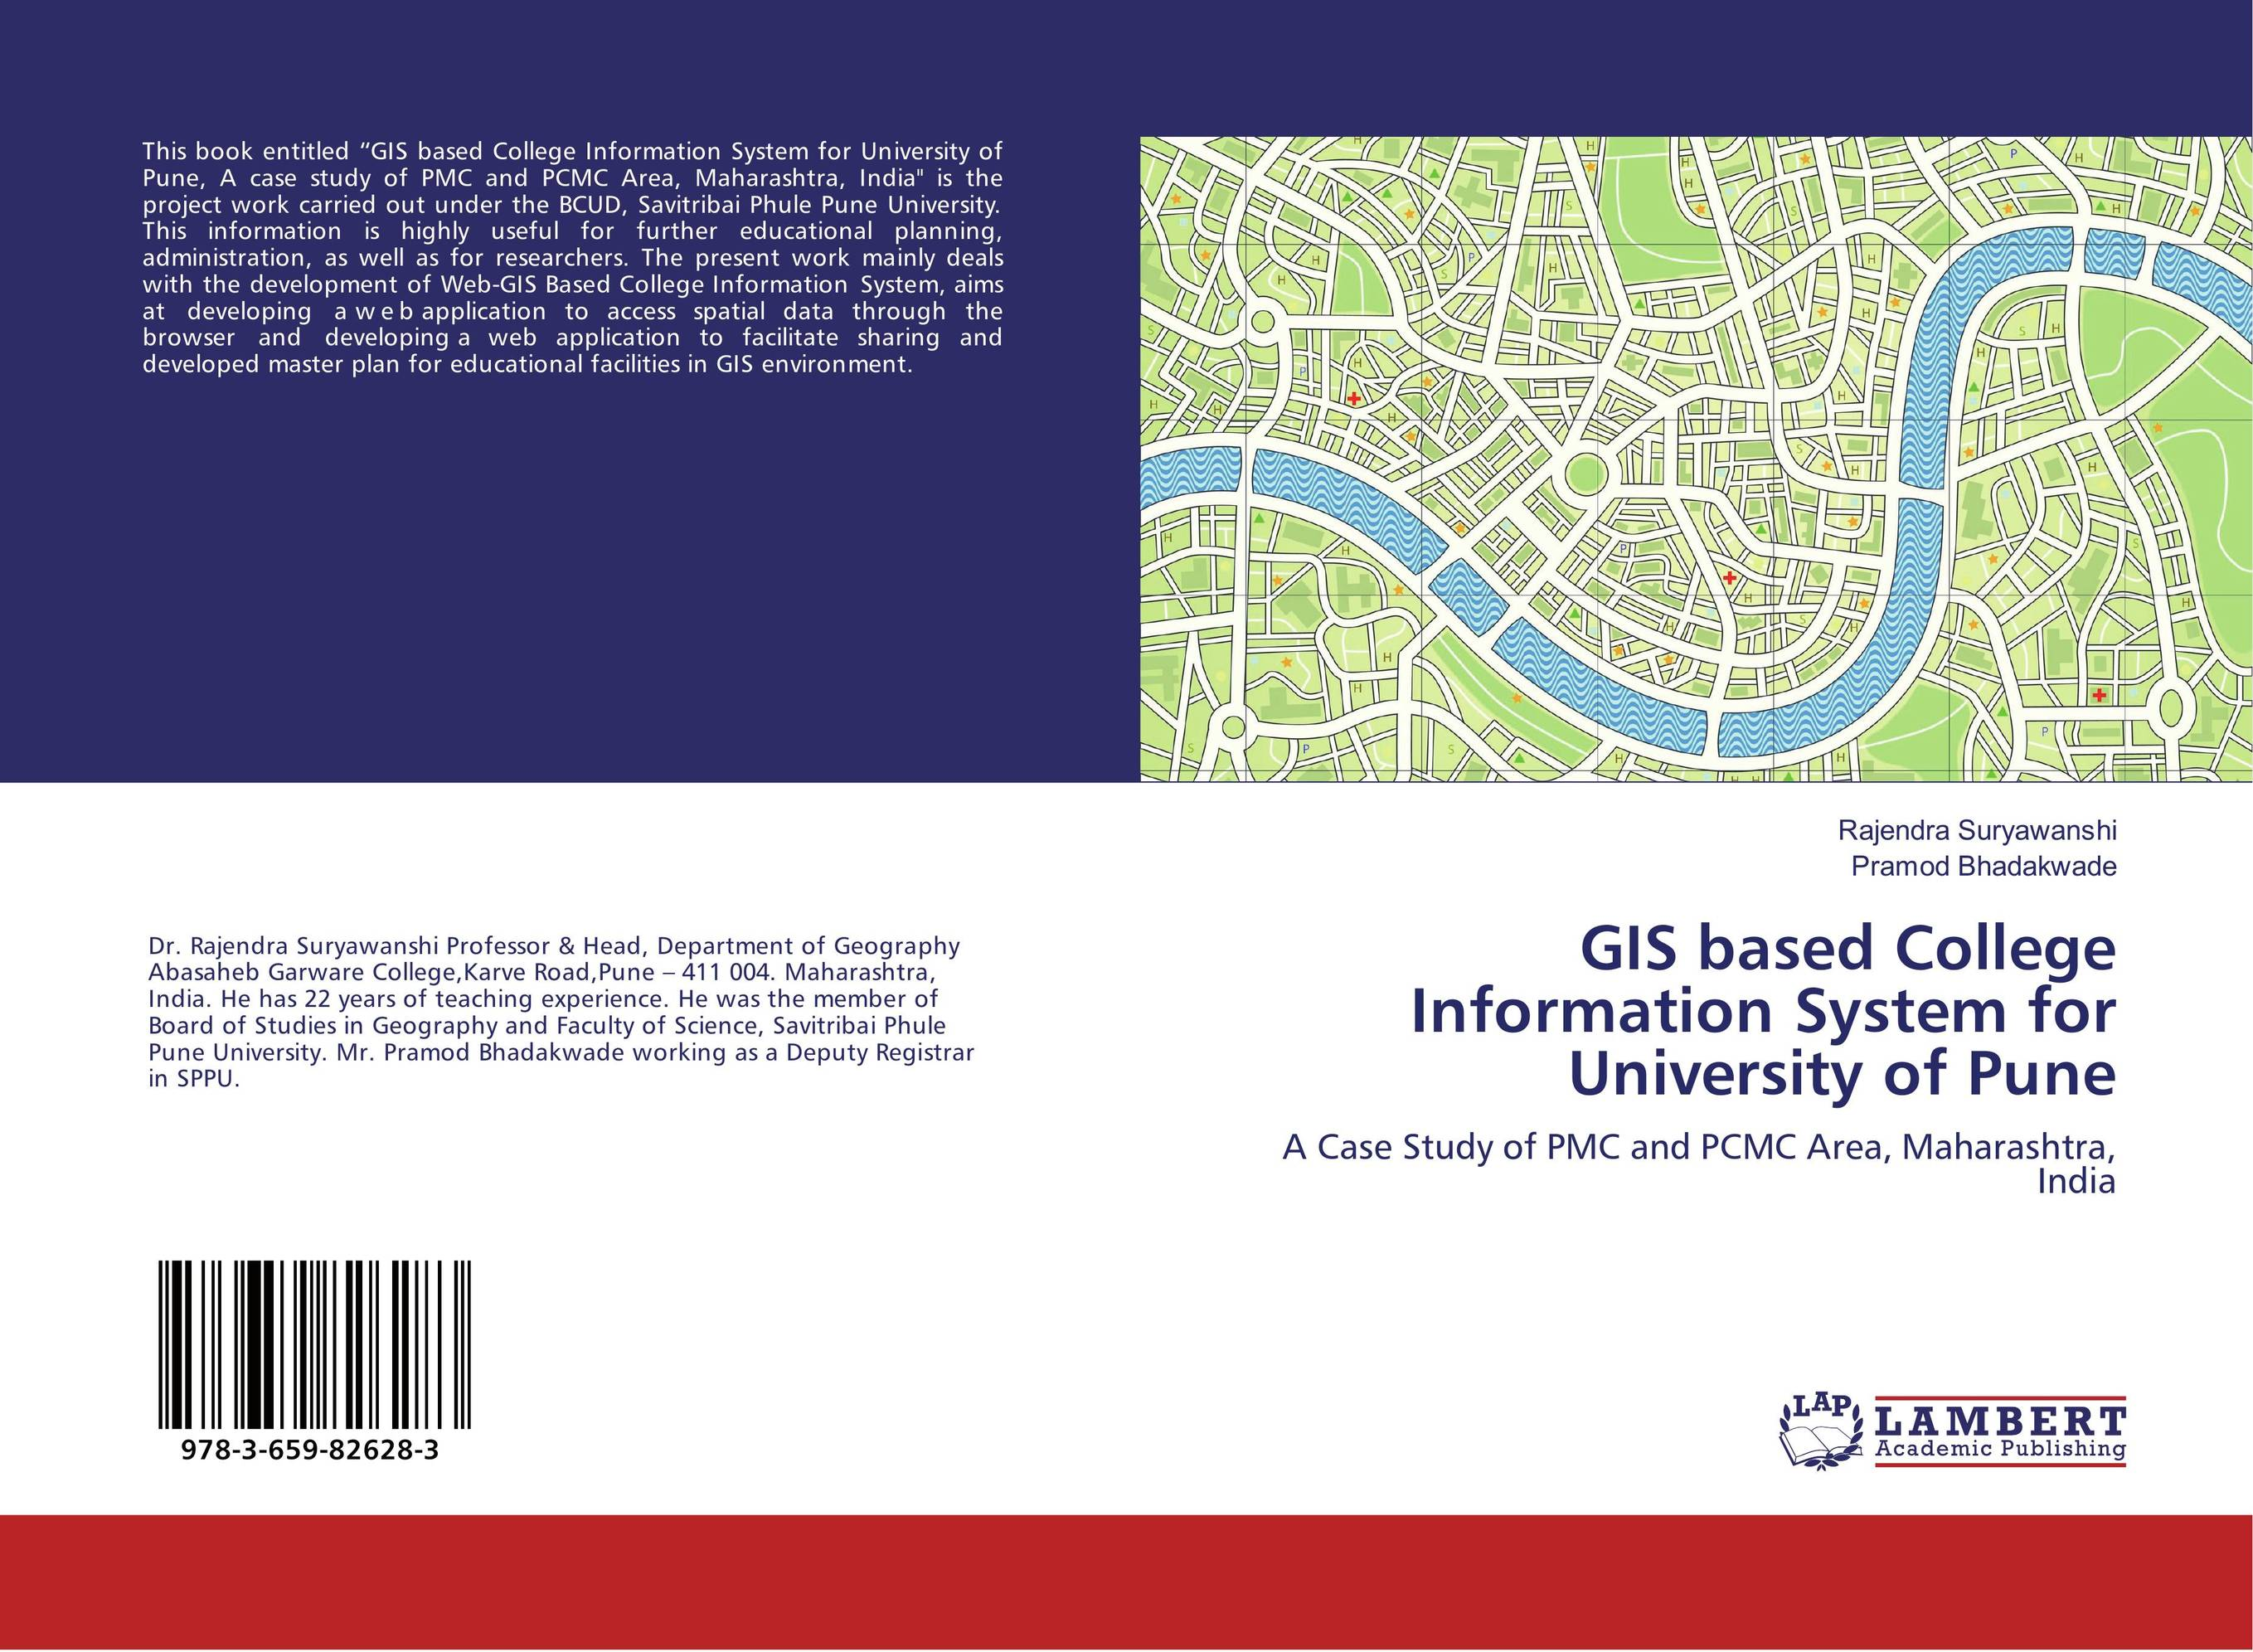 GIS based College Information System for University of Pune